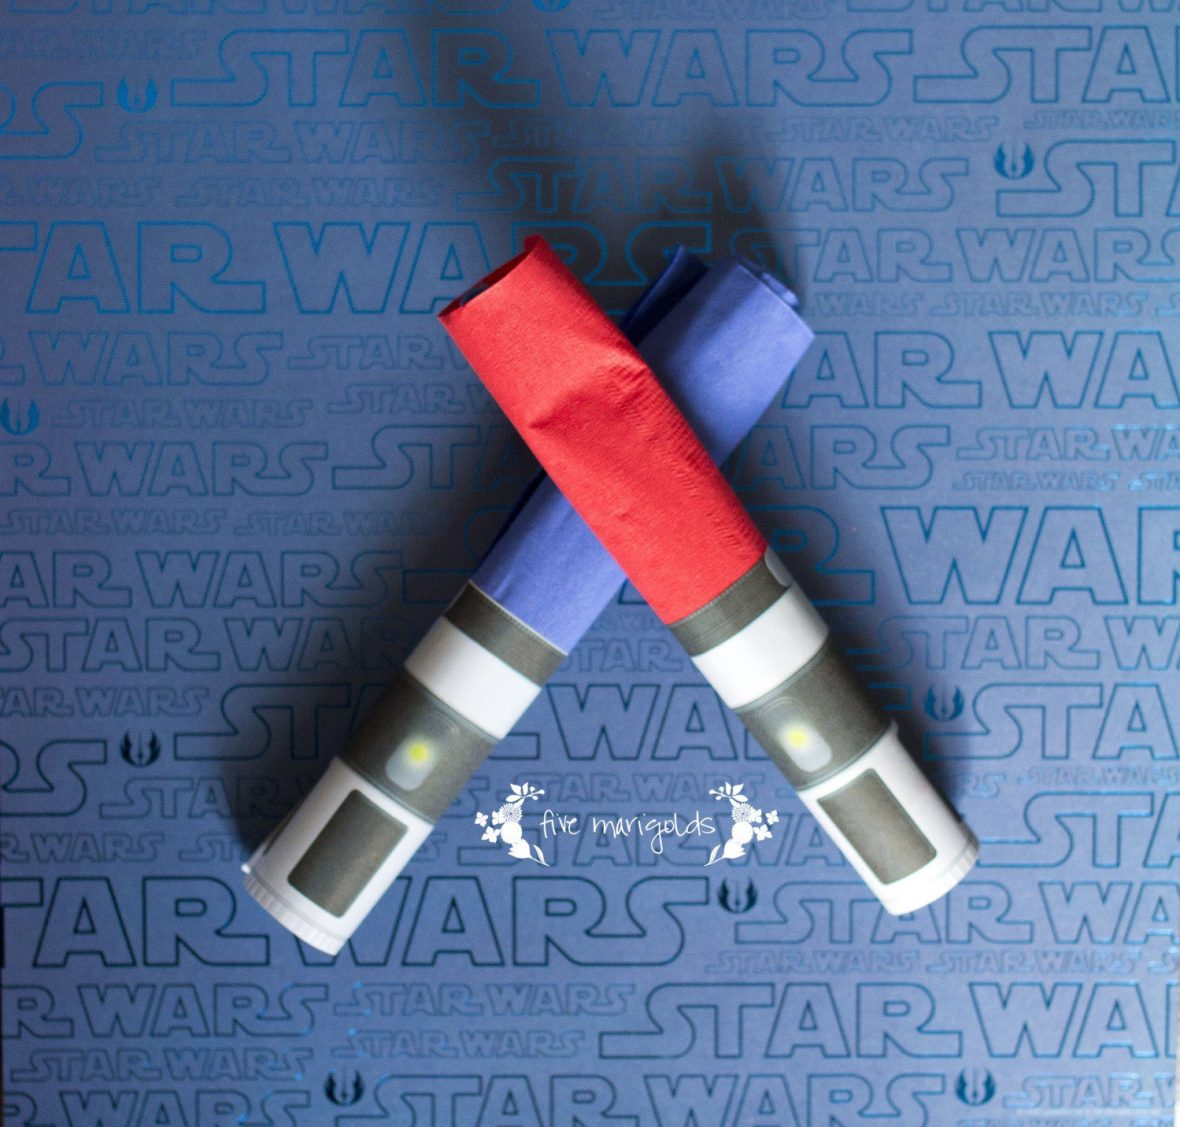 Star Wars Birthday Party Boba Fett Buffet Light Saber Napkin Rings | www.fivemarigolds.com